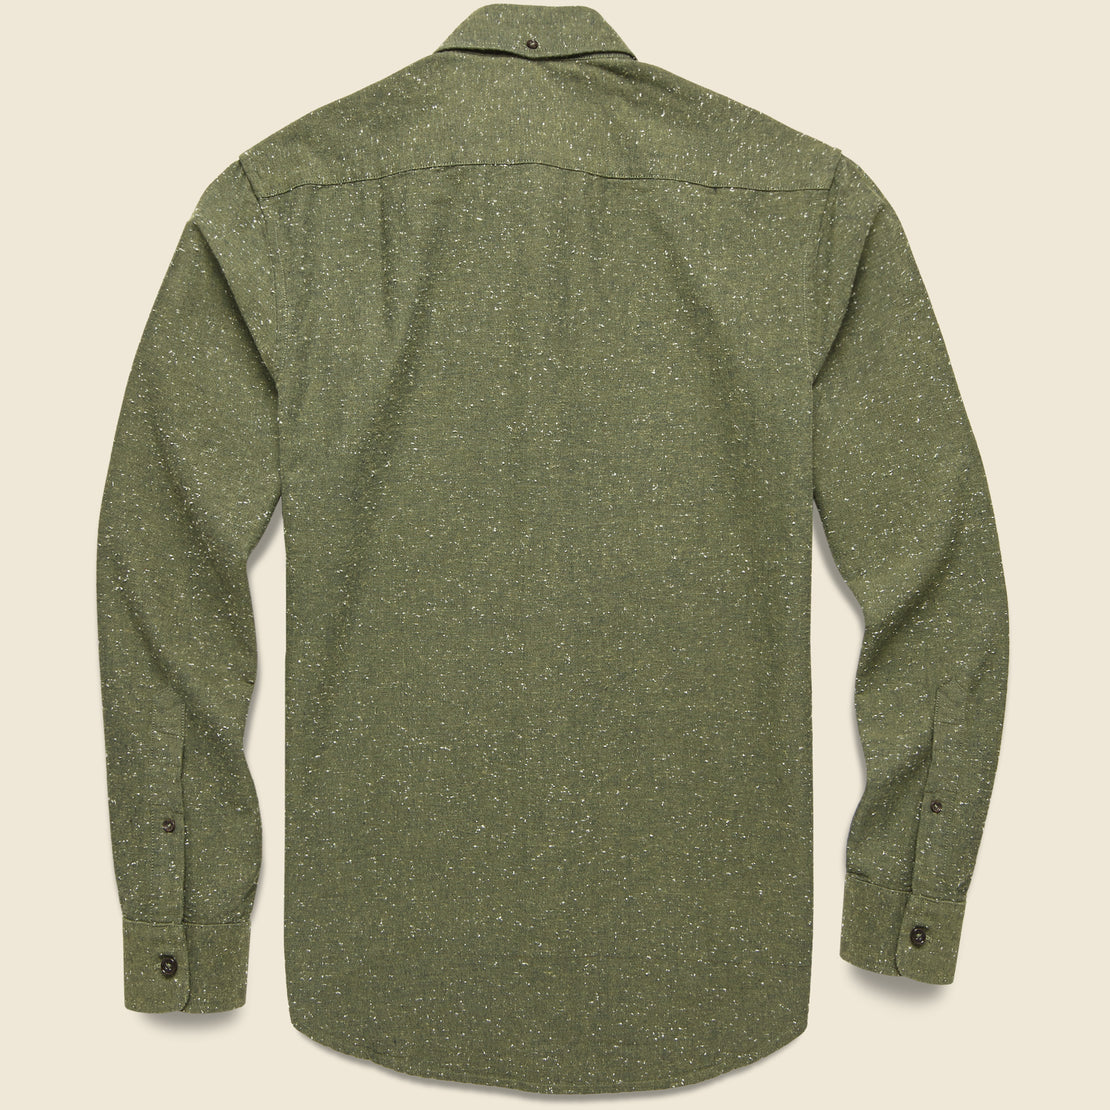 Jack Shirt - Olive Donegal